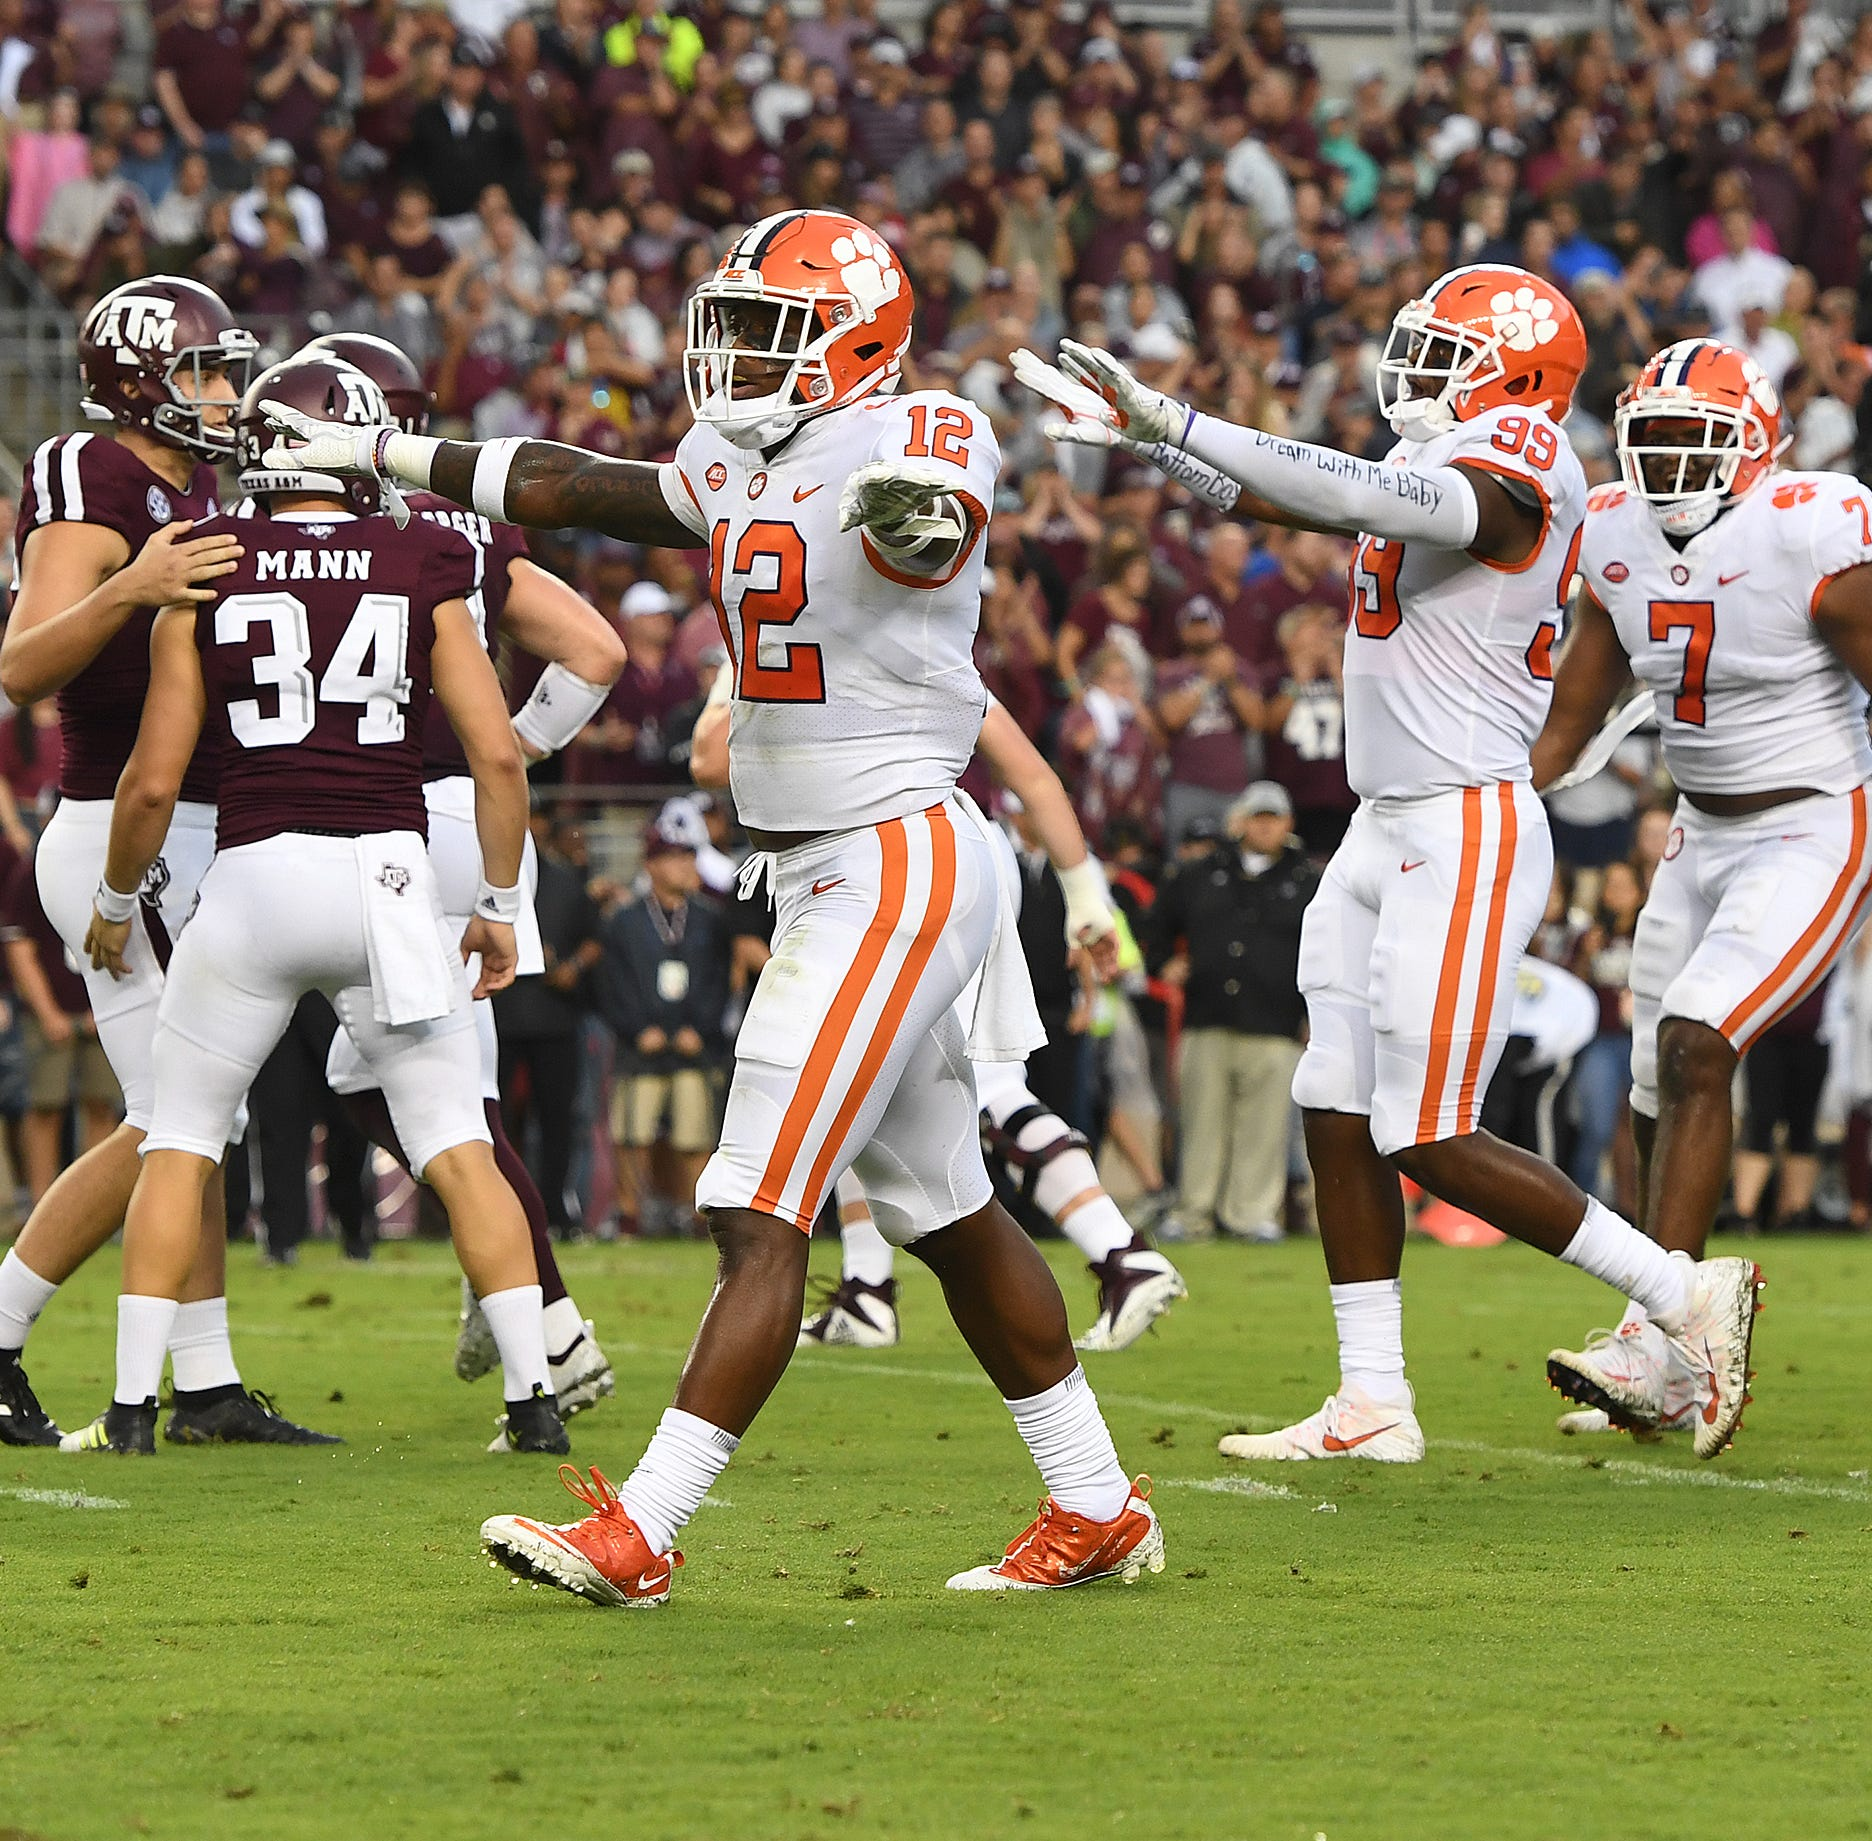 Grading the Tigers: Secondary hasn't been tested much but hasn't aced its midterm